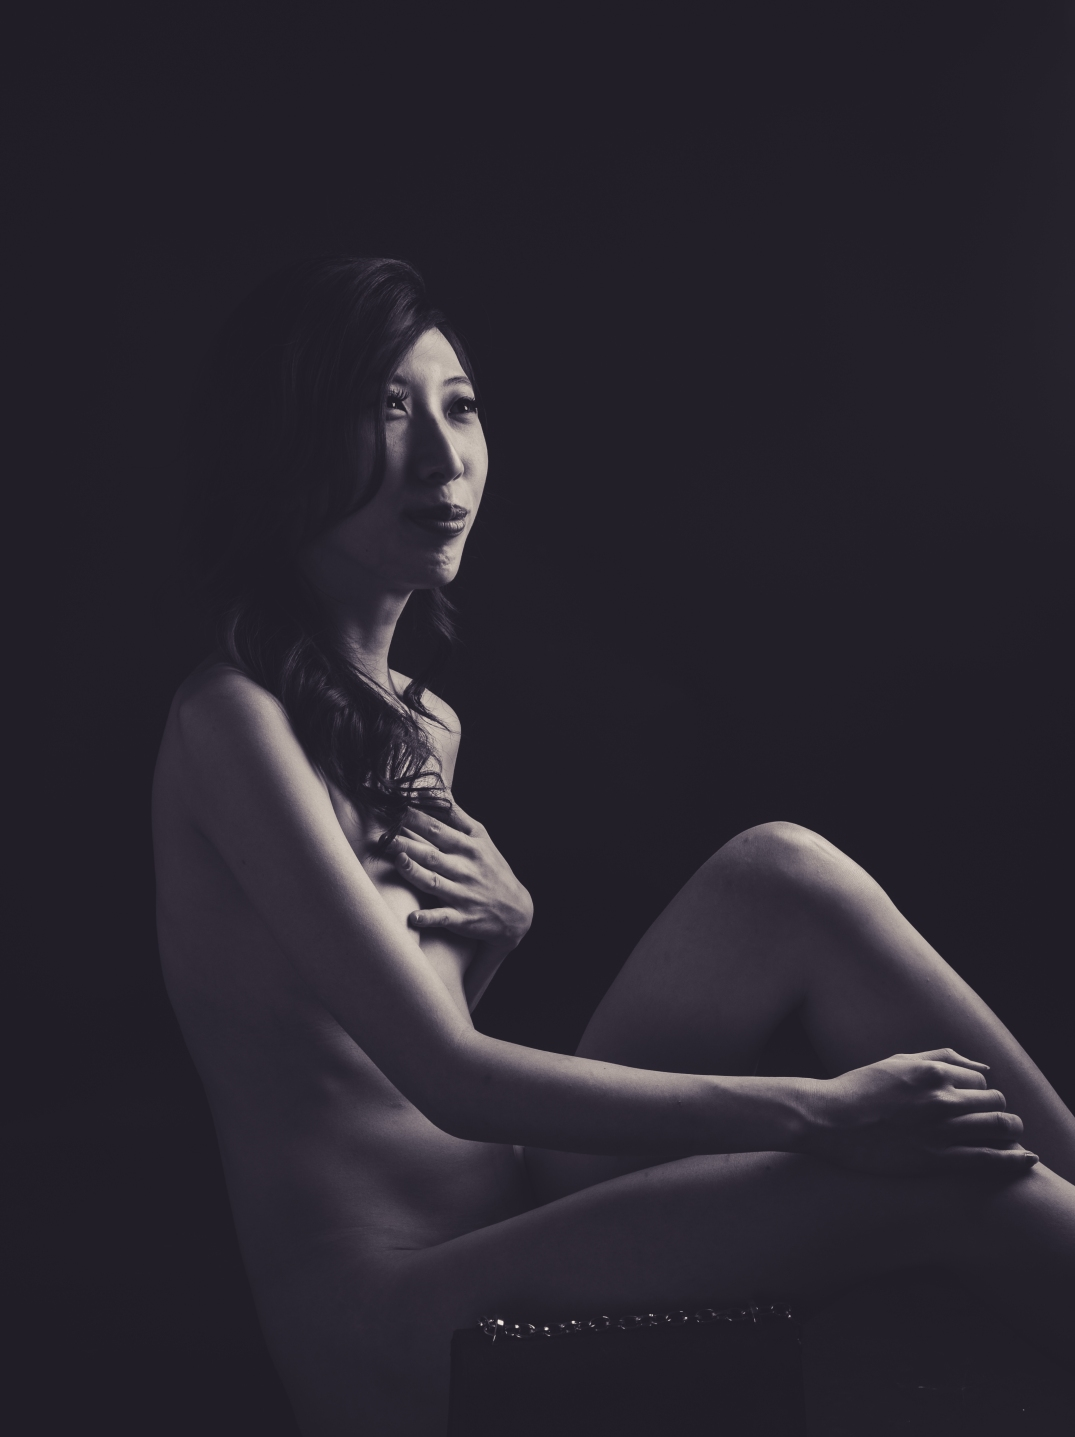 moody nude portrait photography HK by paulstylist-15